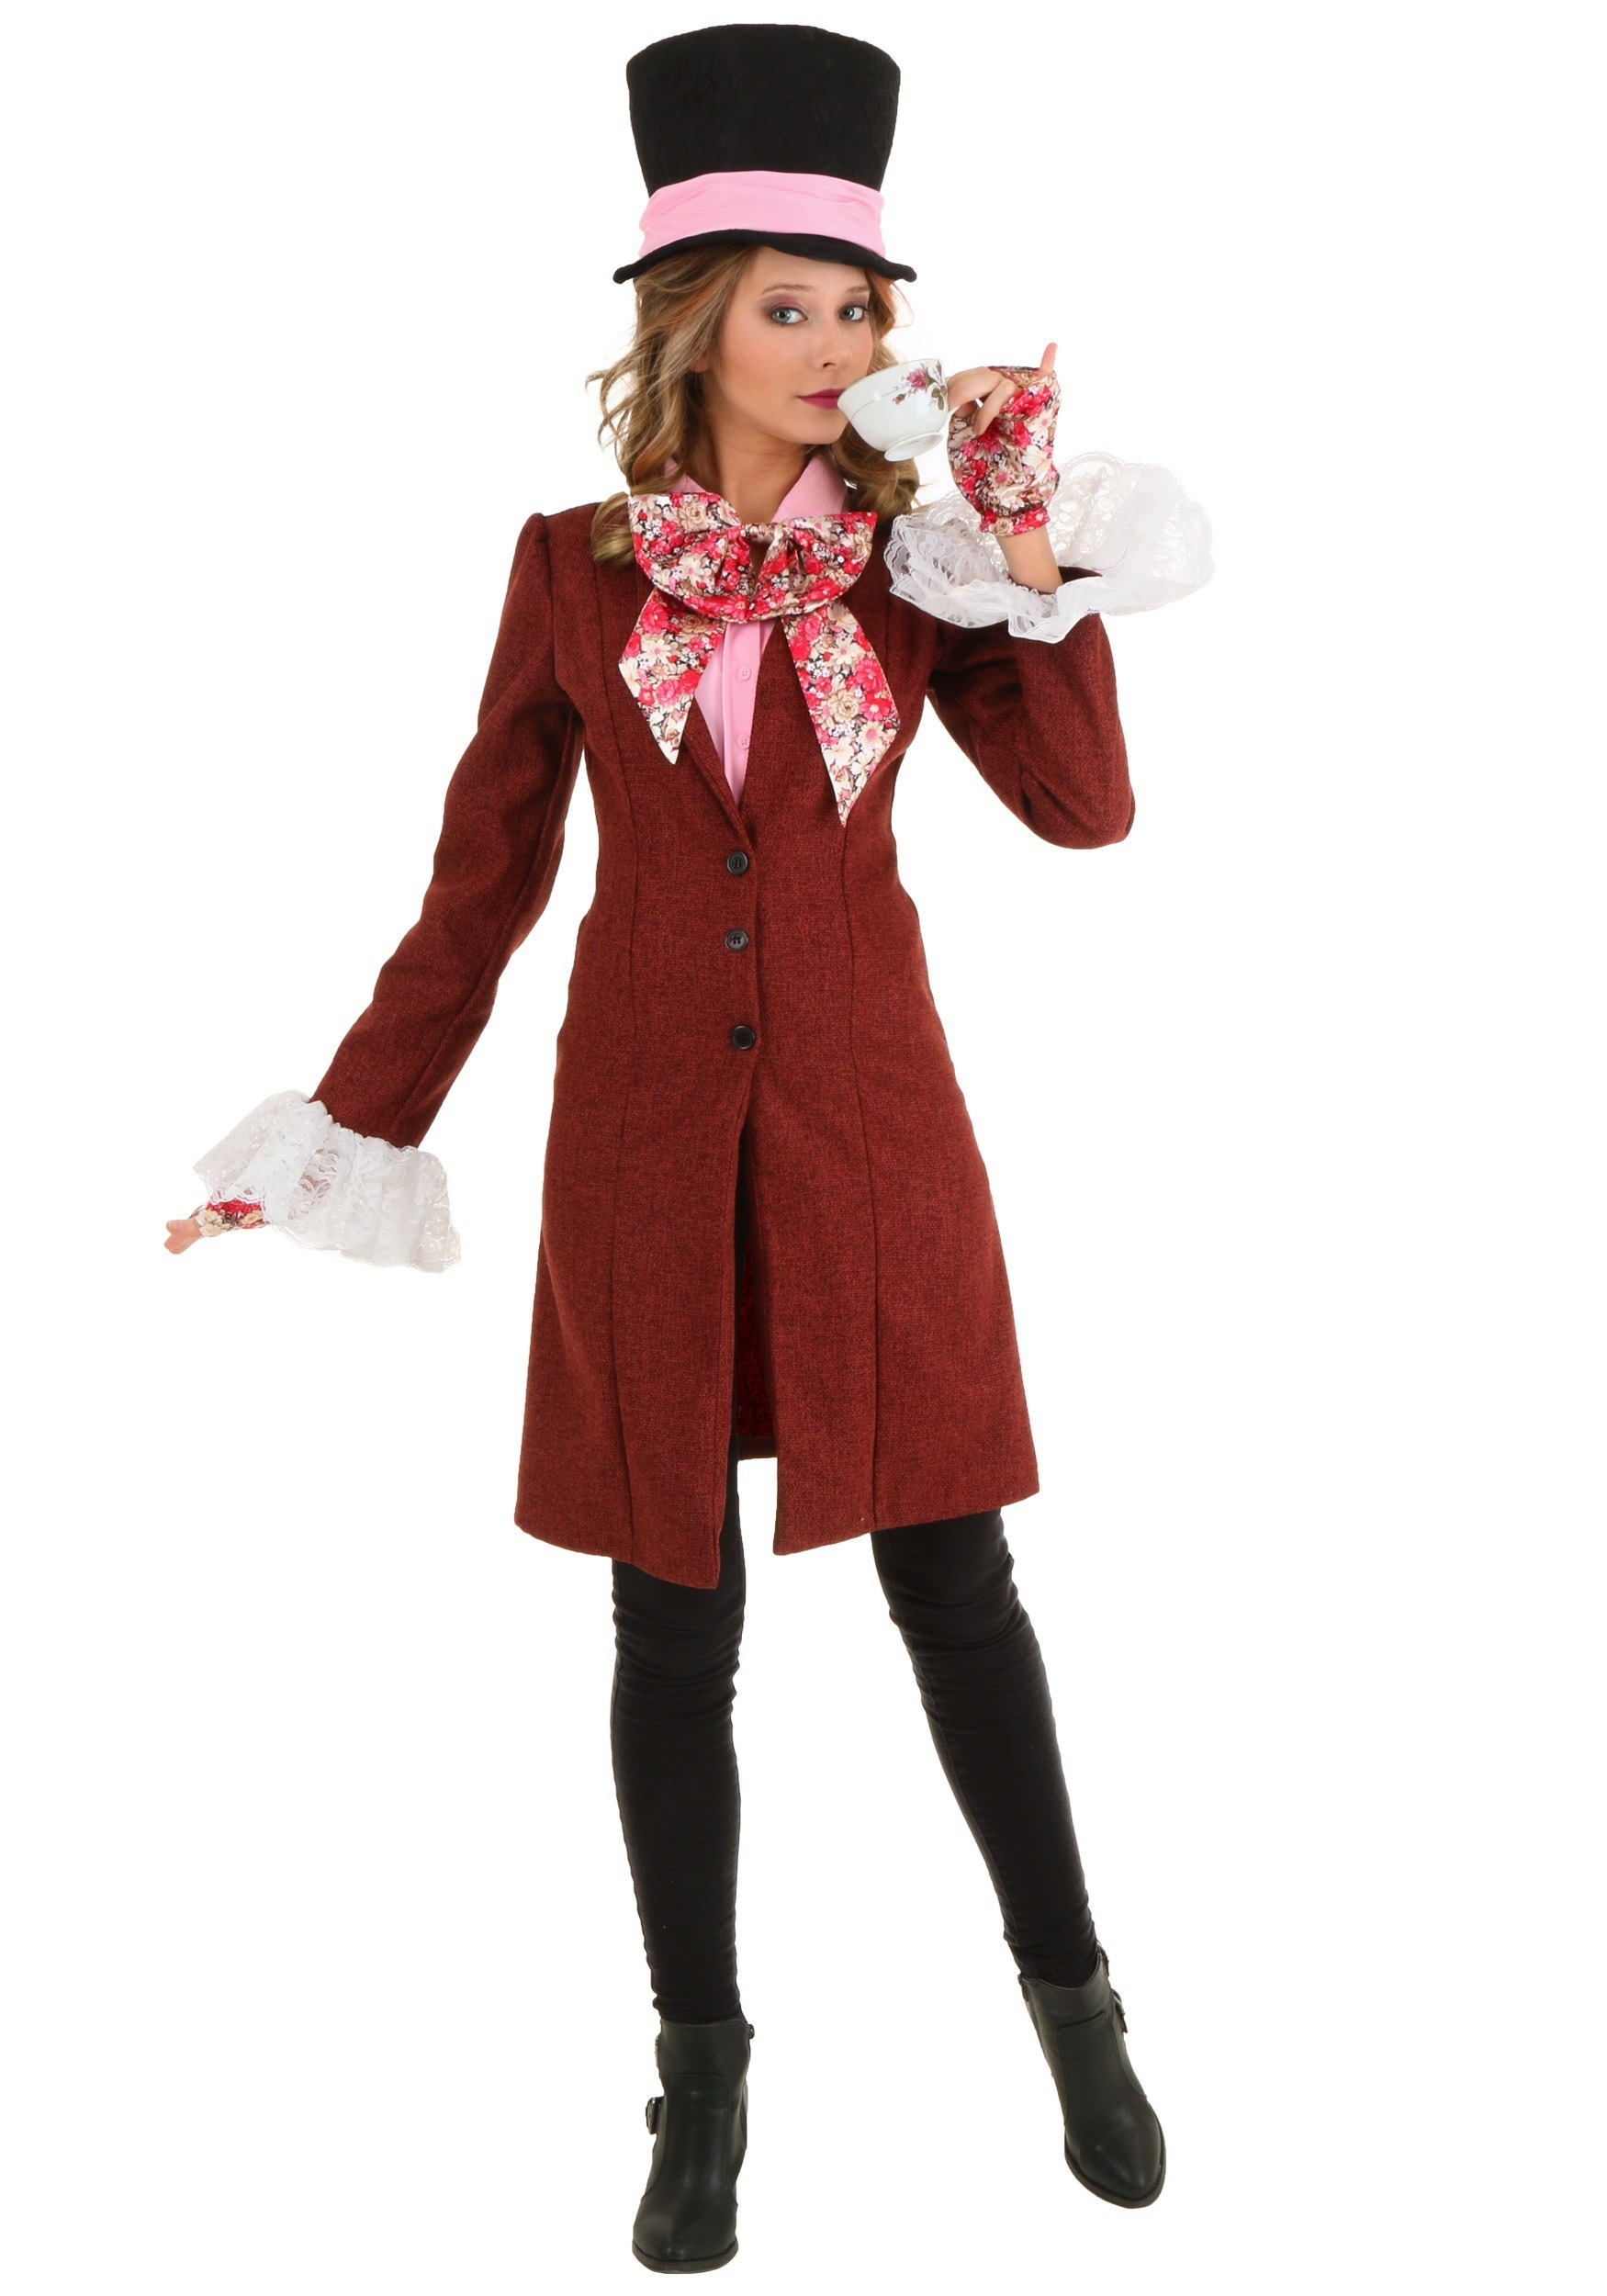 Women's Deluxe Mad Hatter Costume